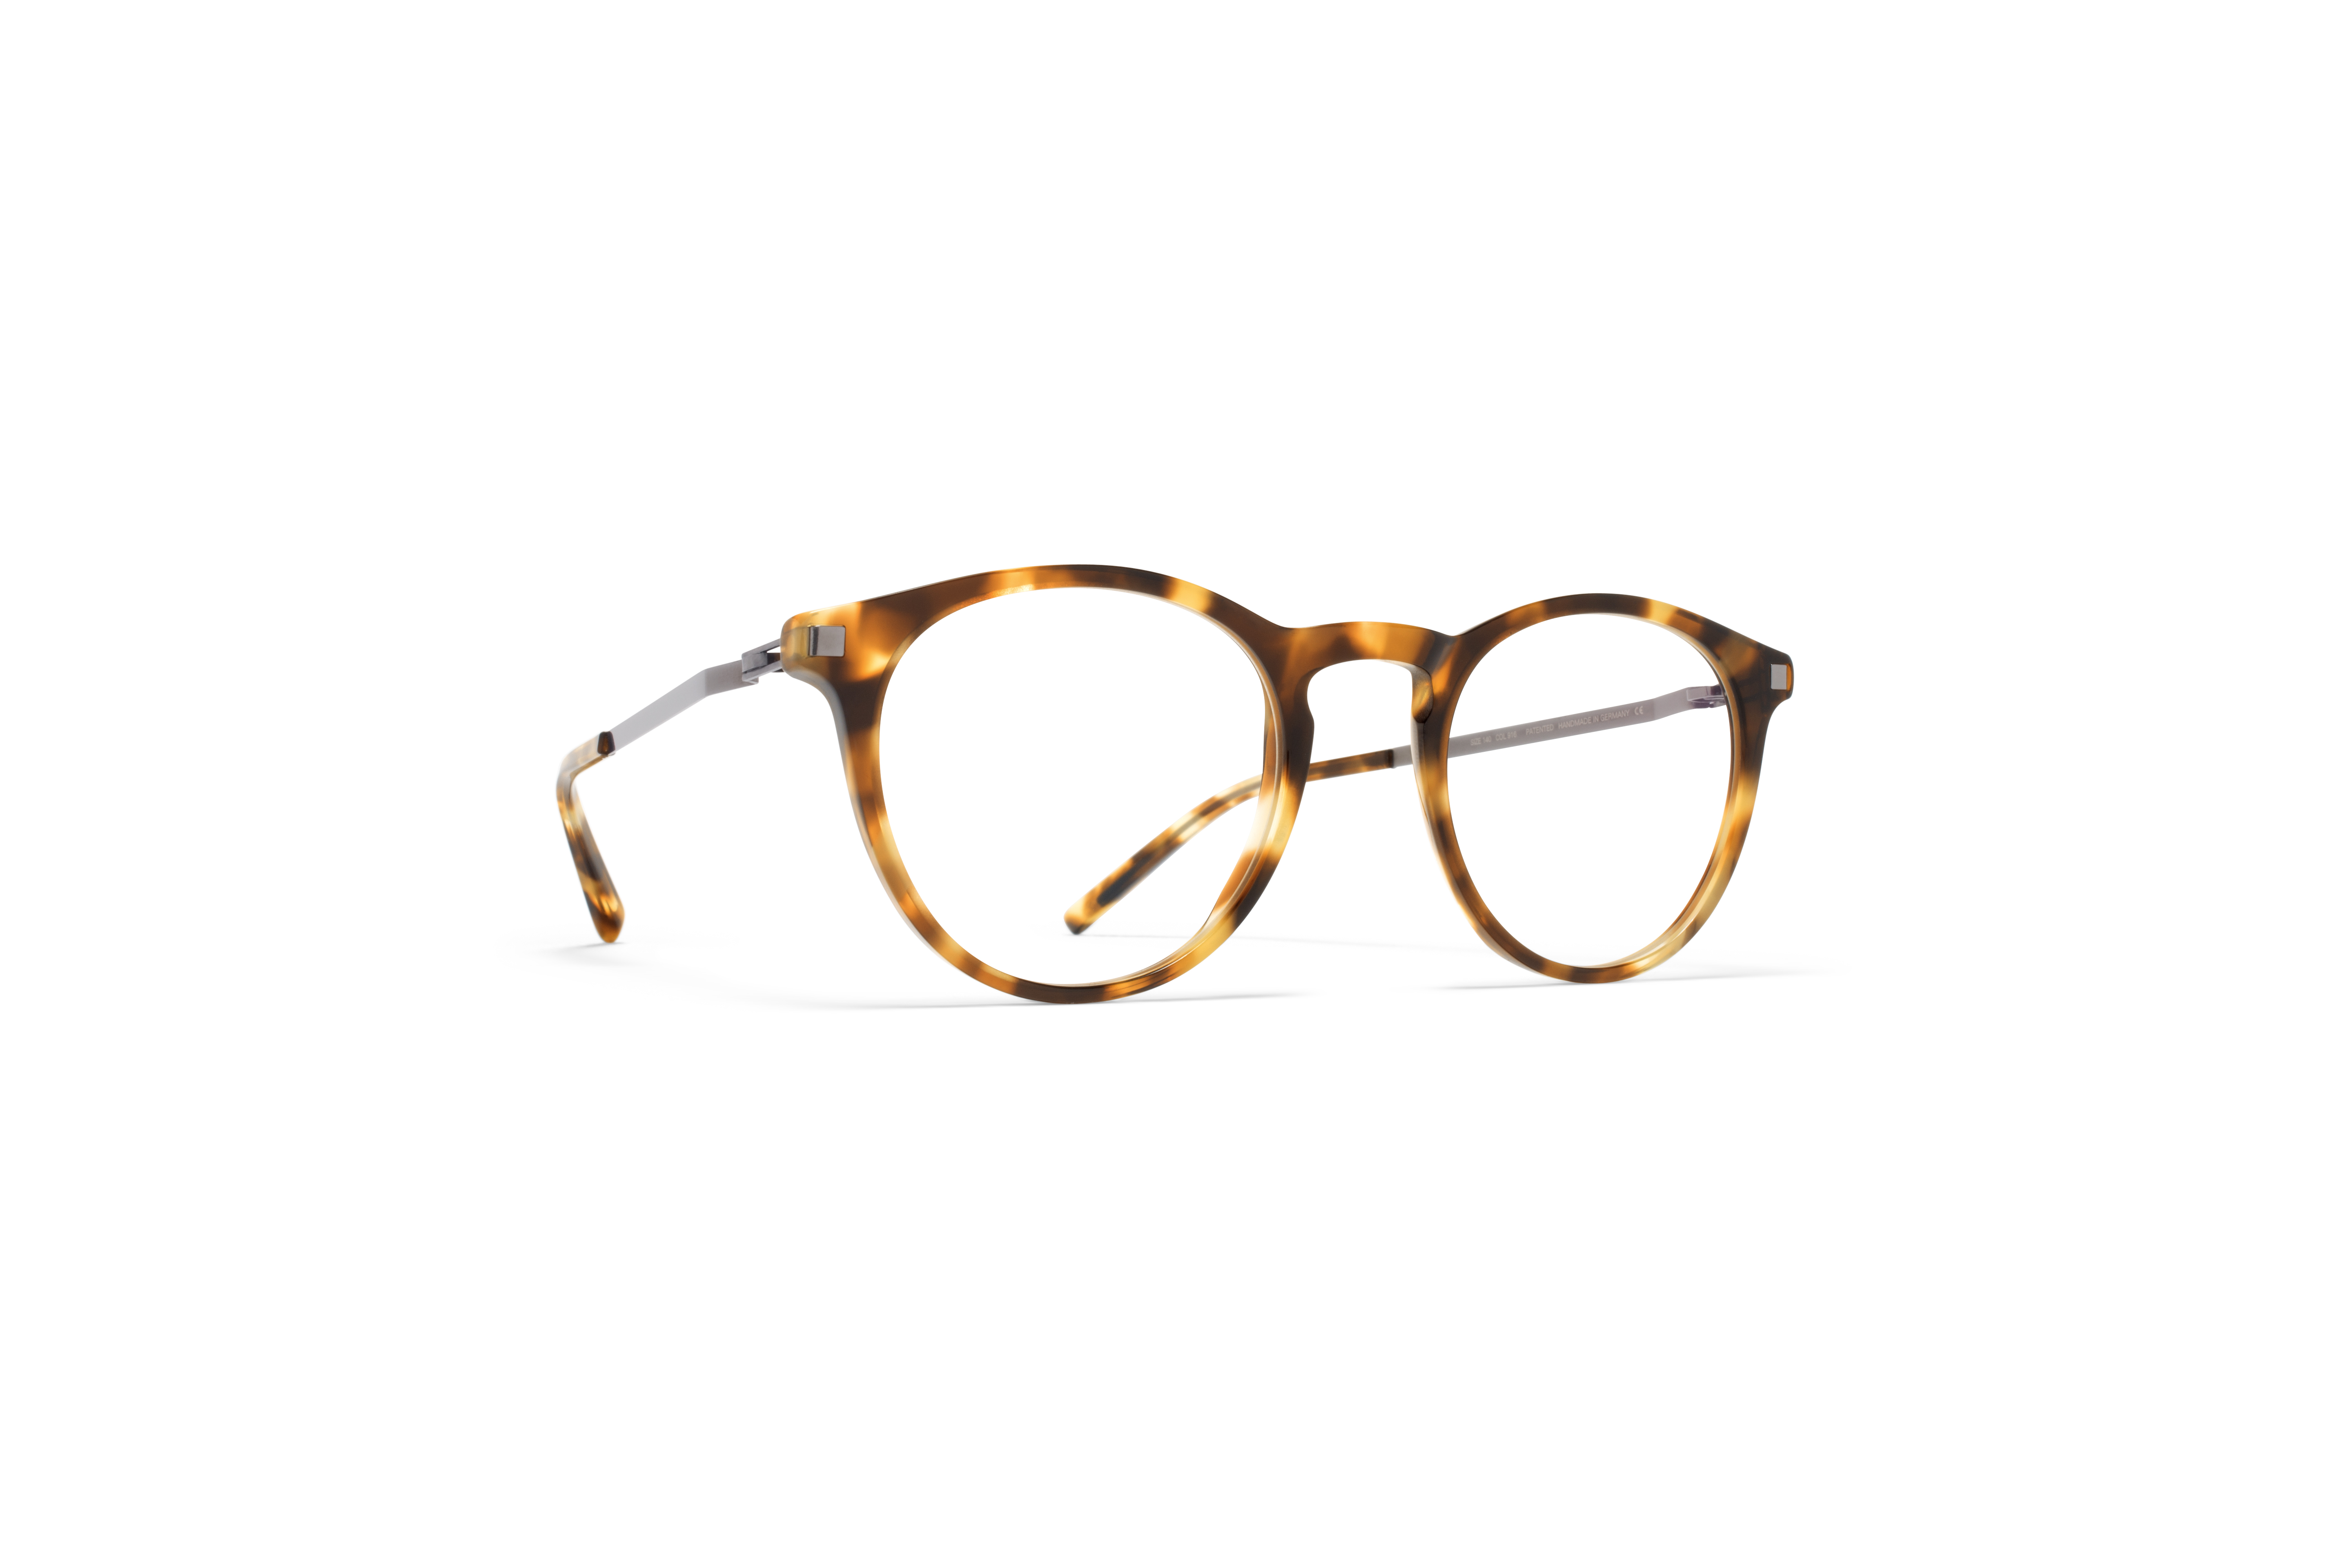 MYKITA Lite Acetate Rx Talini C3 Cocoa Sprinkles S58d30805963a5